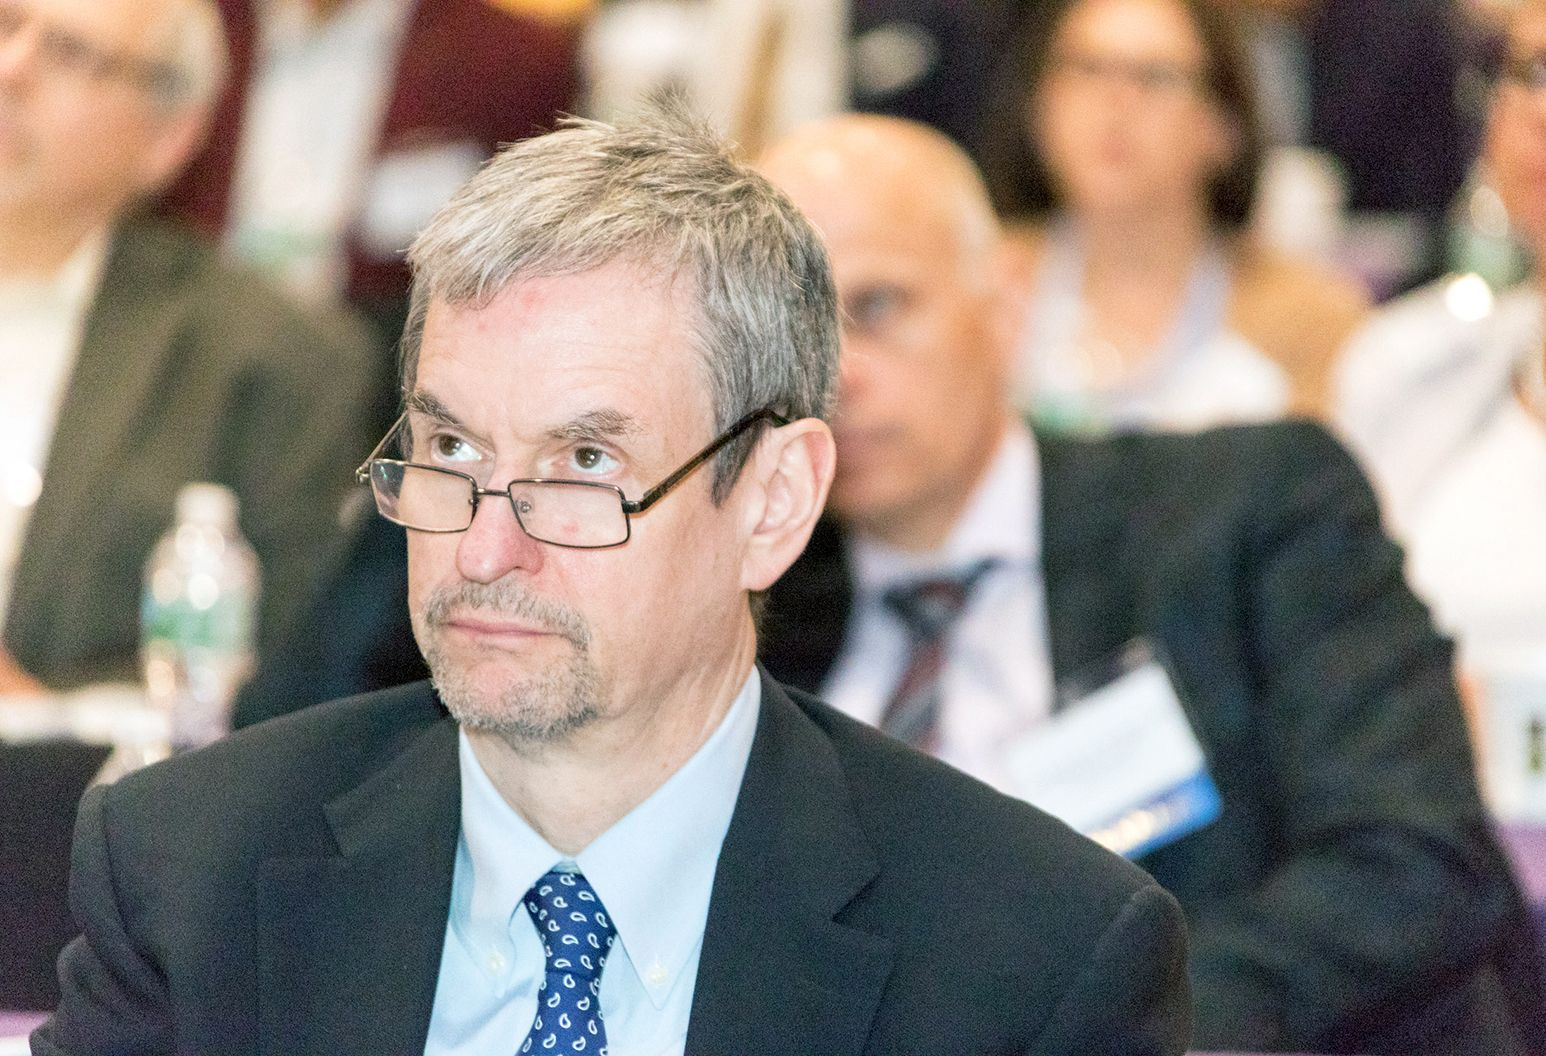 Middle aged man wearing a suit and glasses is watching a presentation at a conference